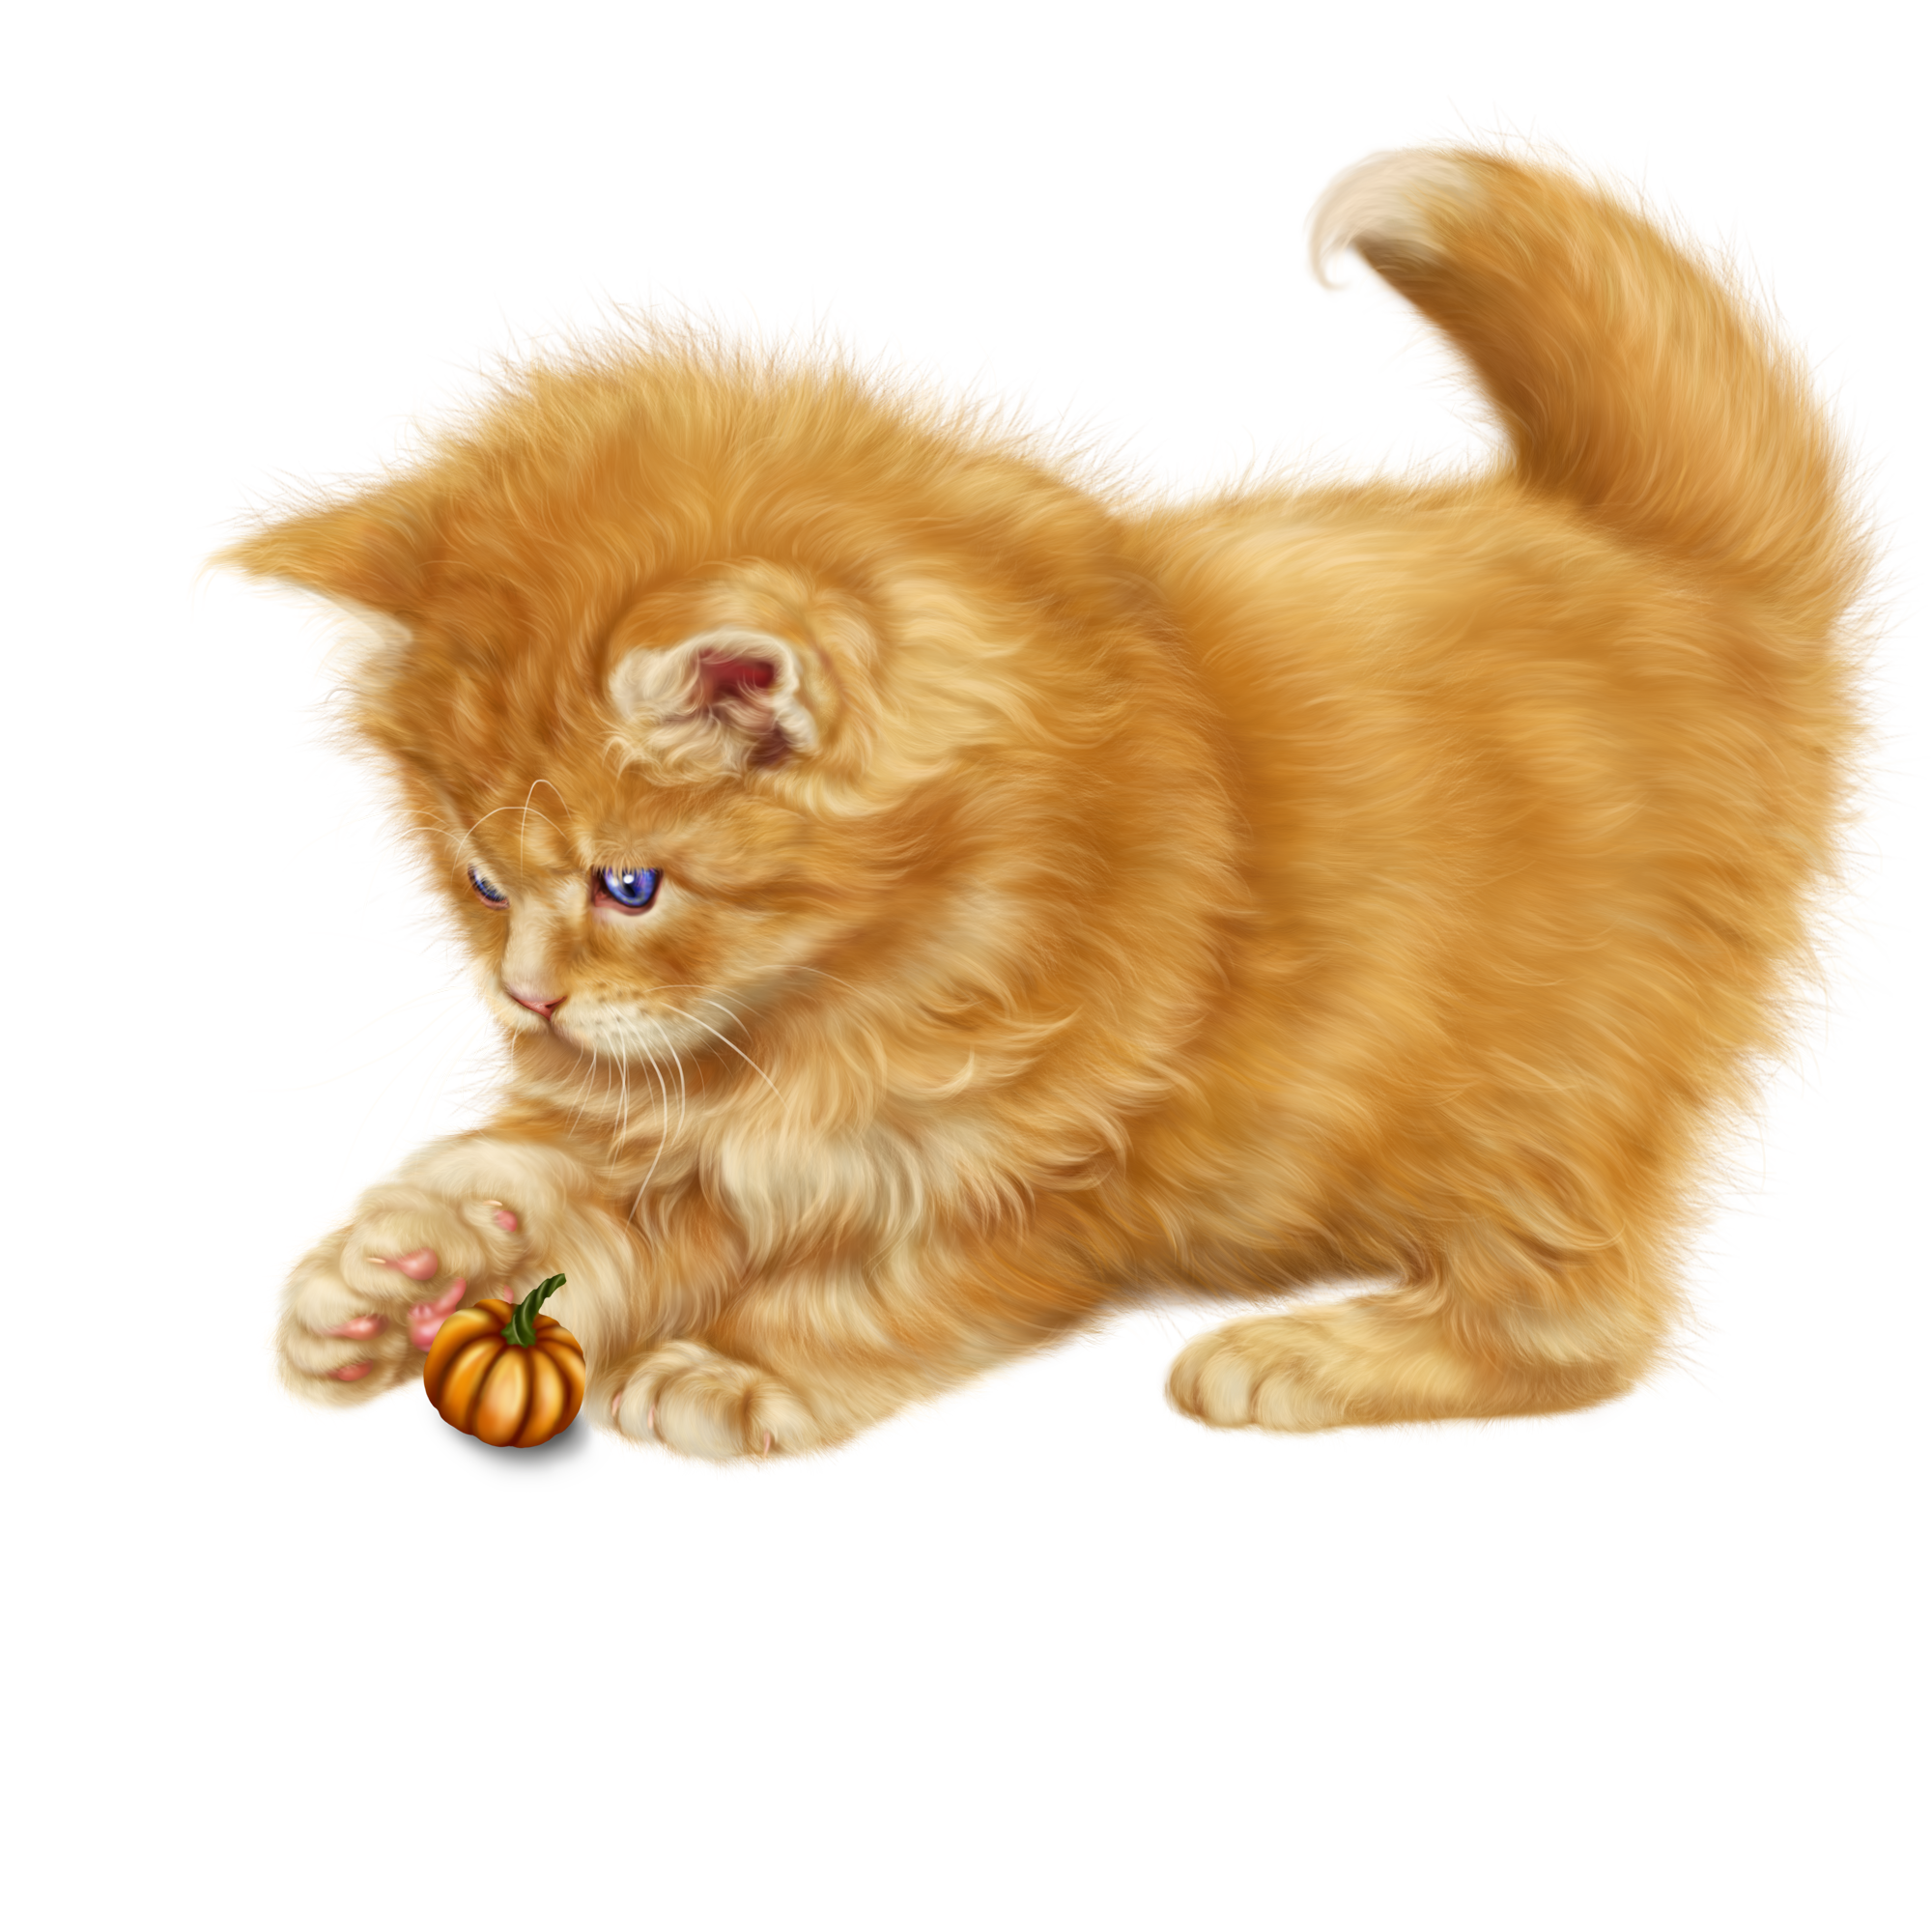 Clipart flowers cat. Pin by lidia on